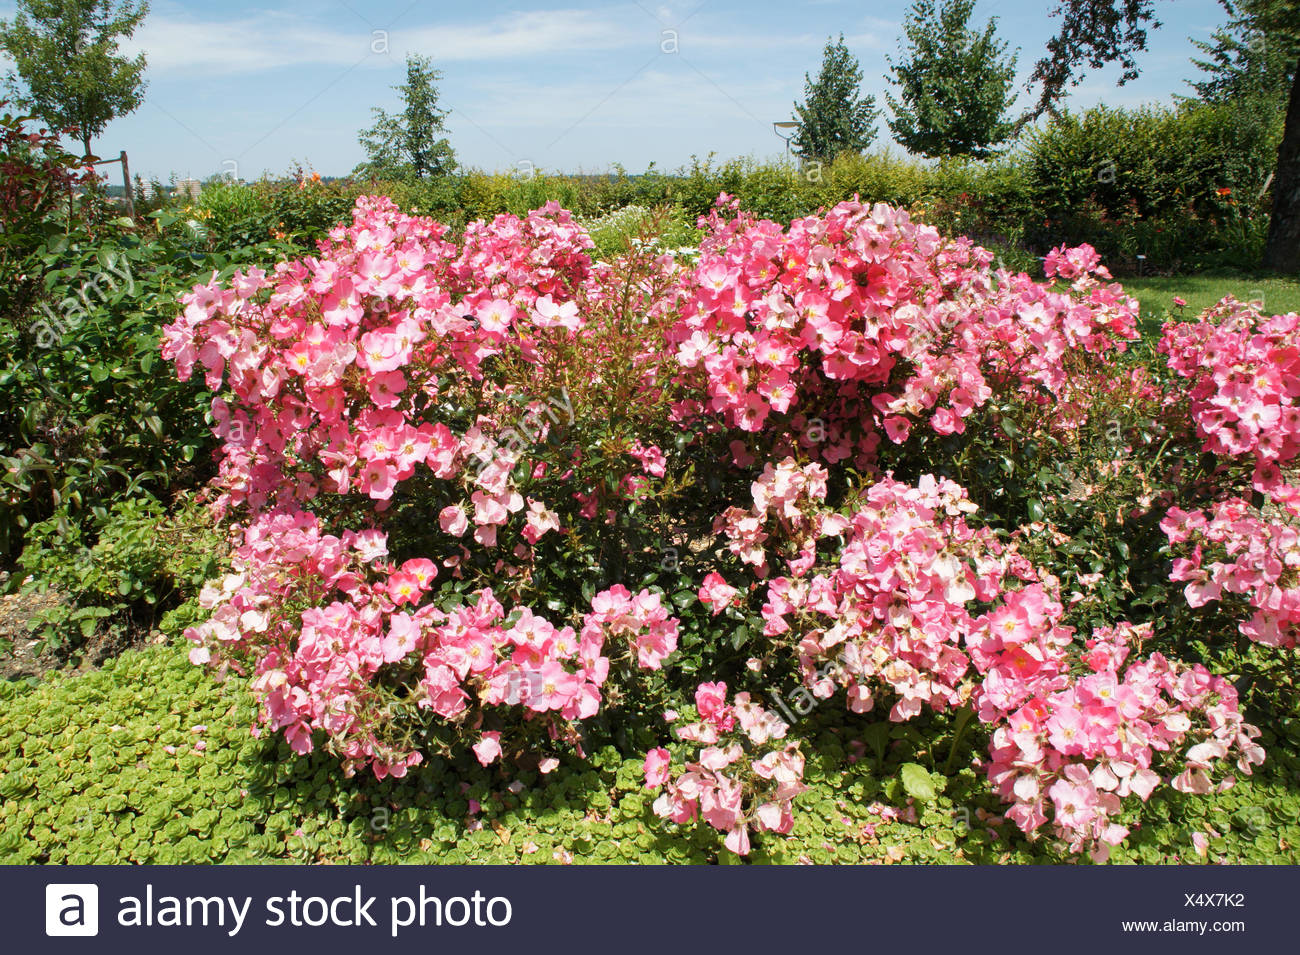 Rosa Fortuna, Hybrid-rose - Stock Image